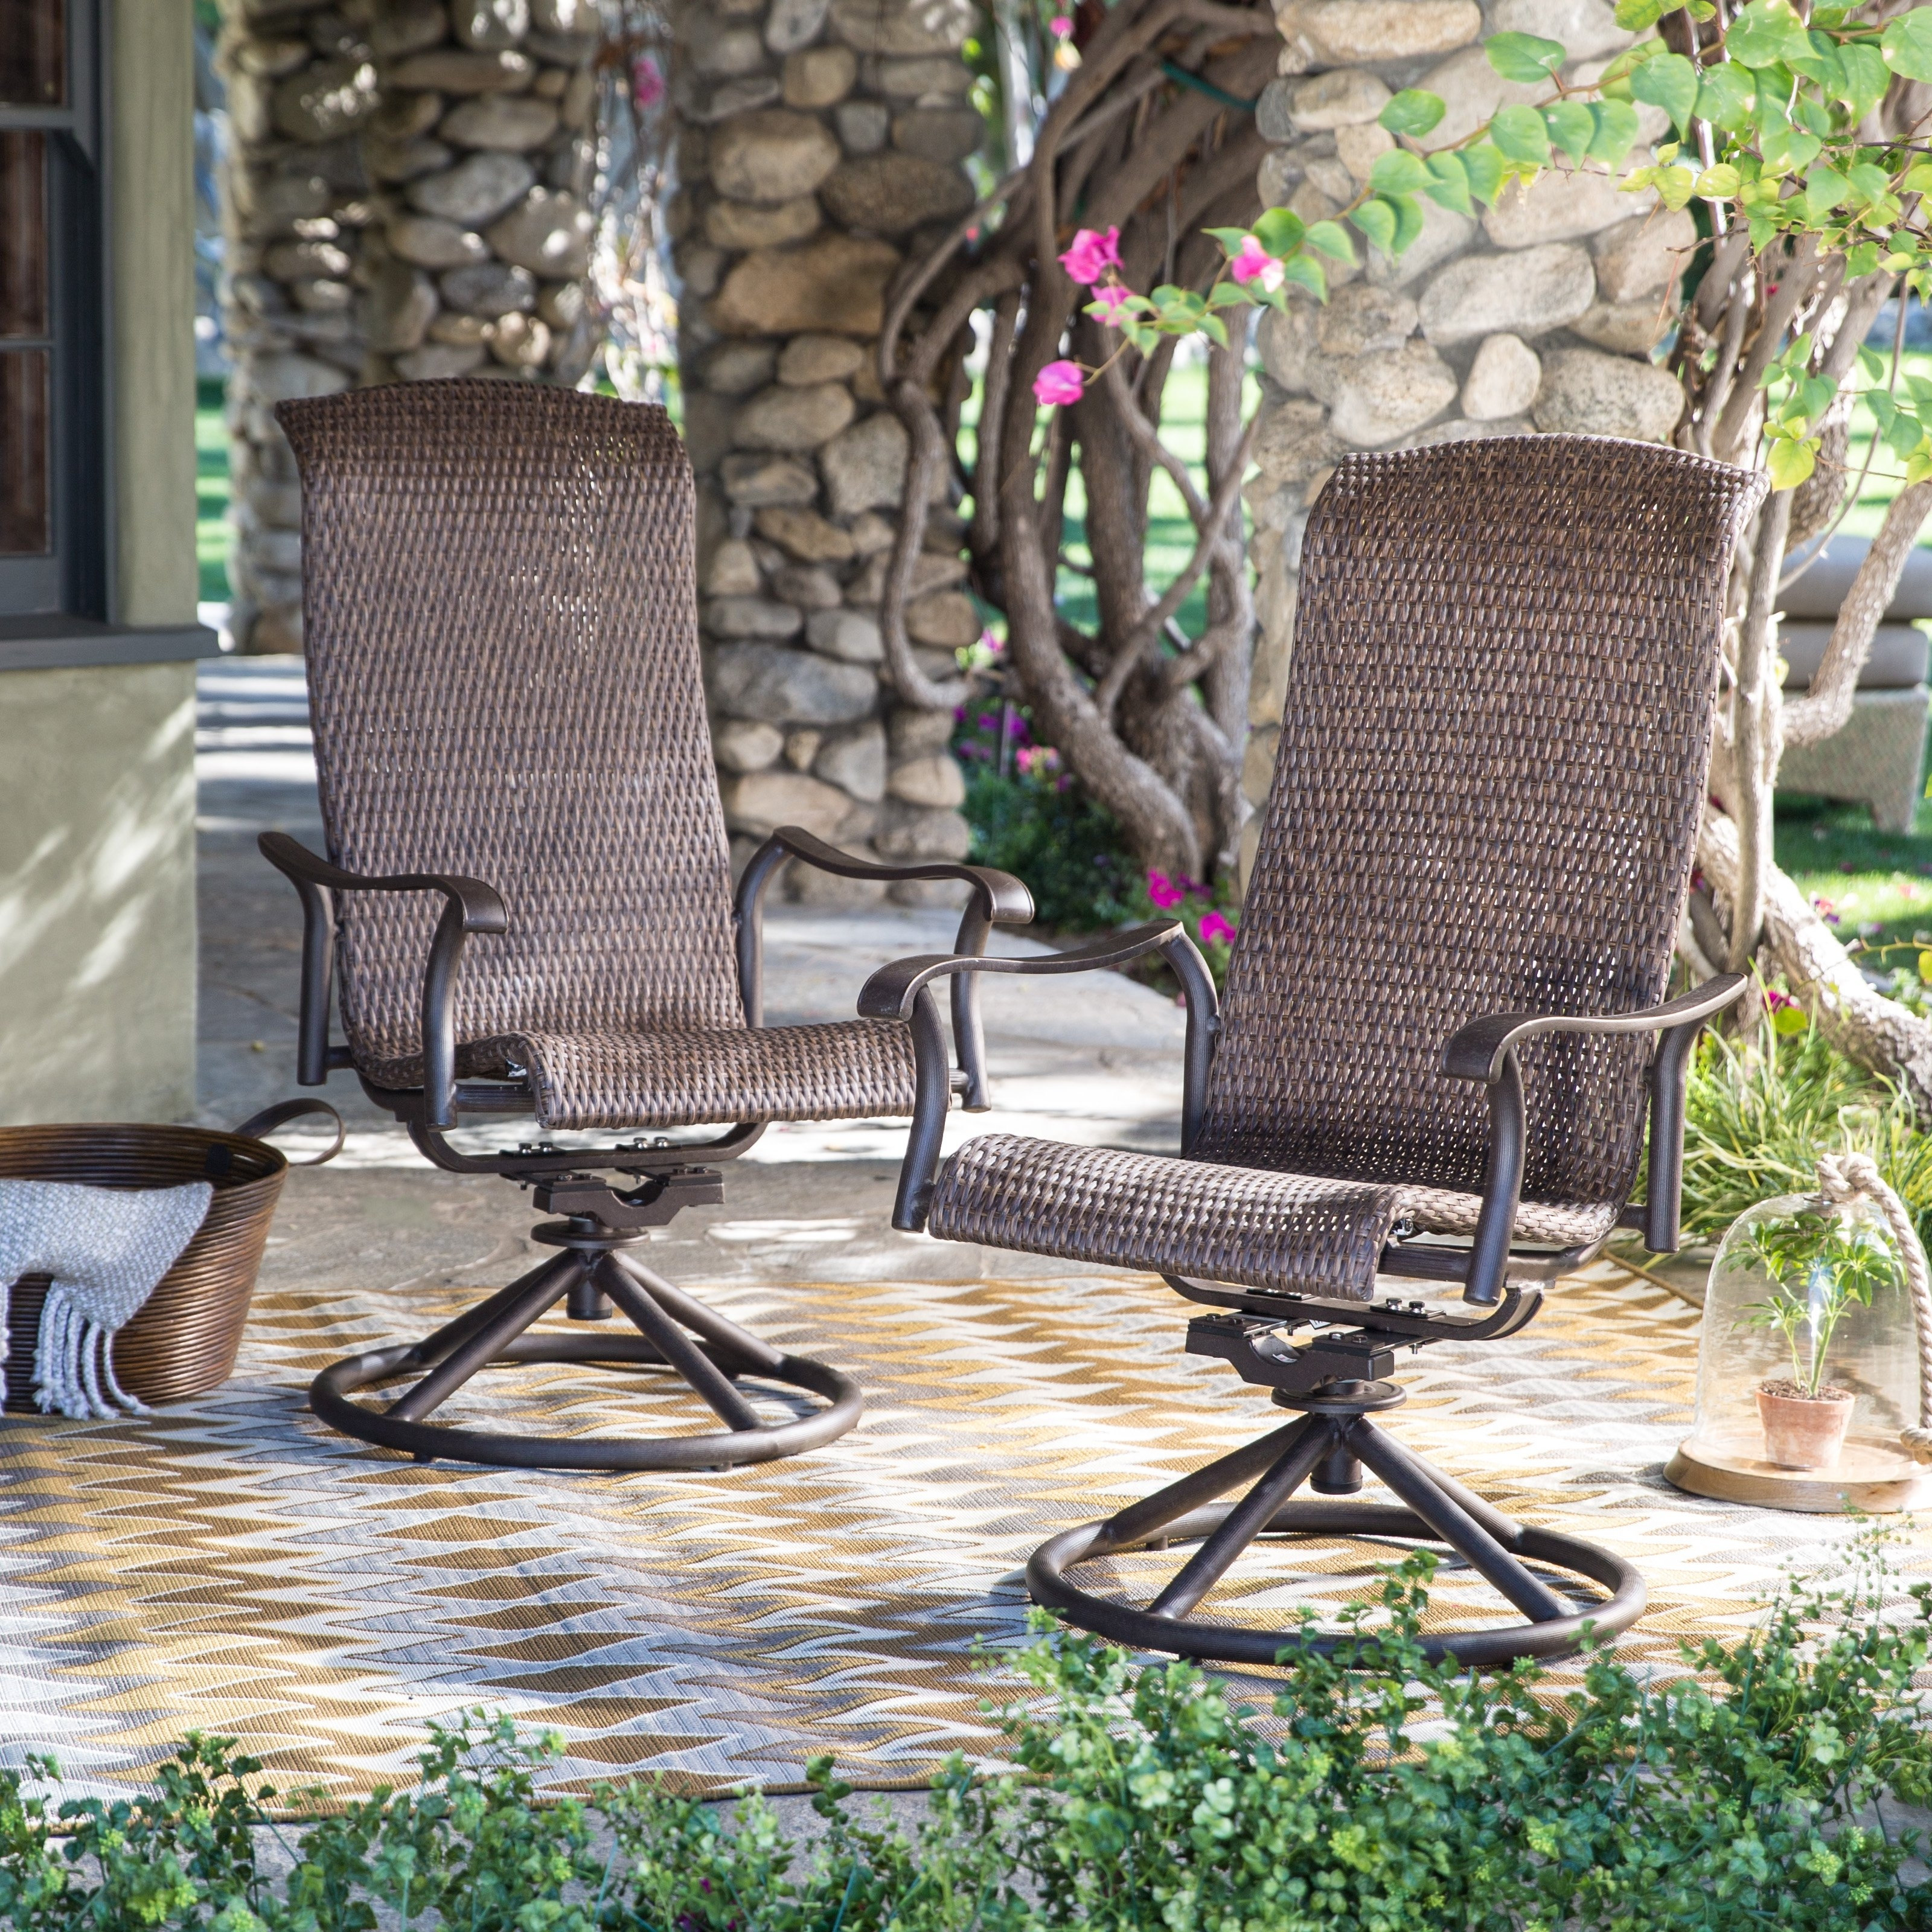 Well Known Wicker Rocking Chairs And Ottoman Intended For Outdoor Wicker Swivel Rocking Chair – Outdoor Designs (View 14 of 15)